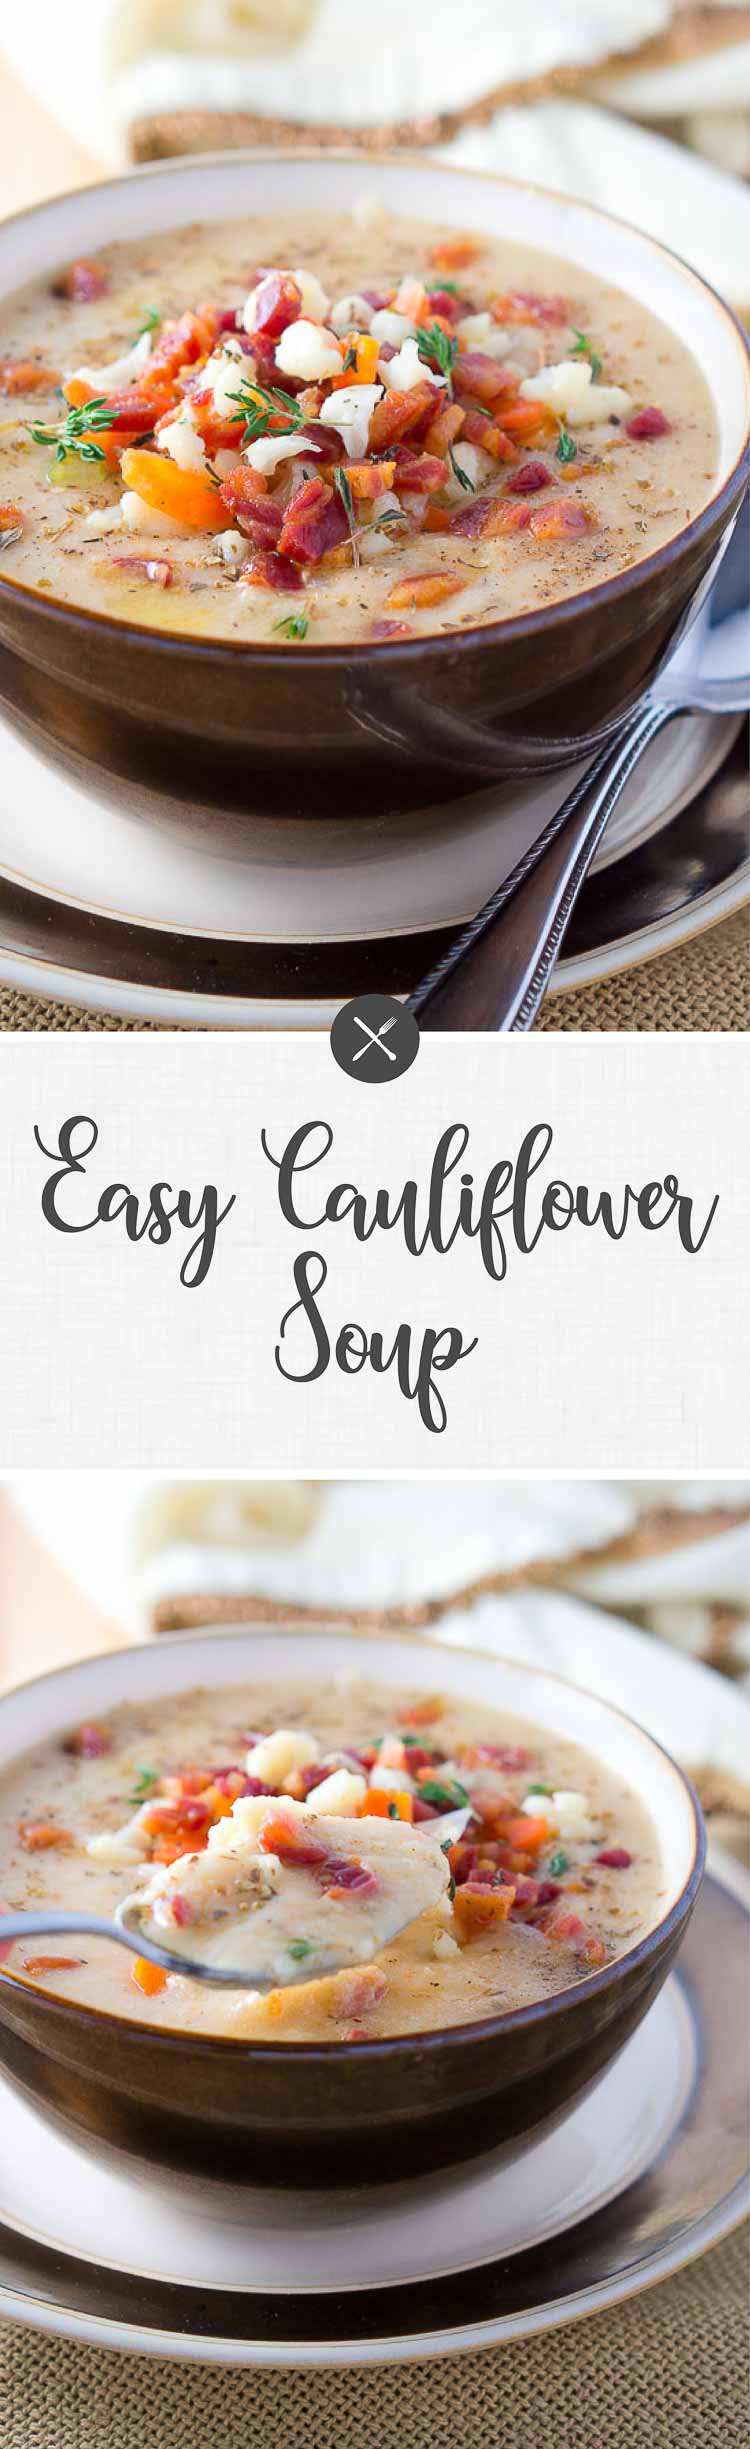 A quick, light and easy cauliflower soup that is dairy-free, gluten-free and absolutely delicious. Thick and creamy, lick-the-bowl good! #soup #comfortfood #glutenfree #healthy #lowcarb #lowfat